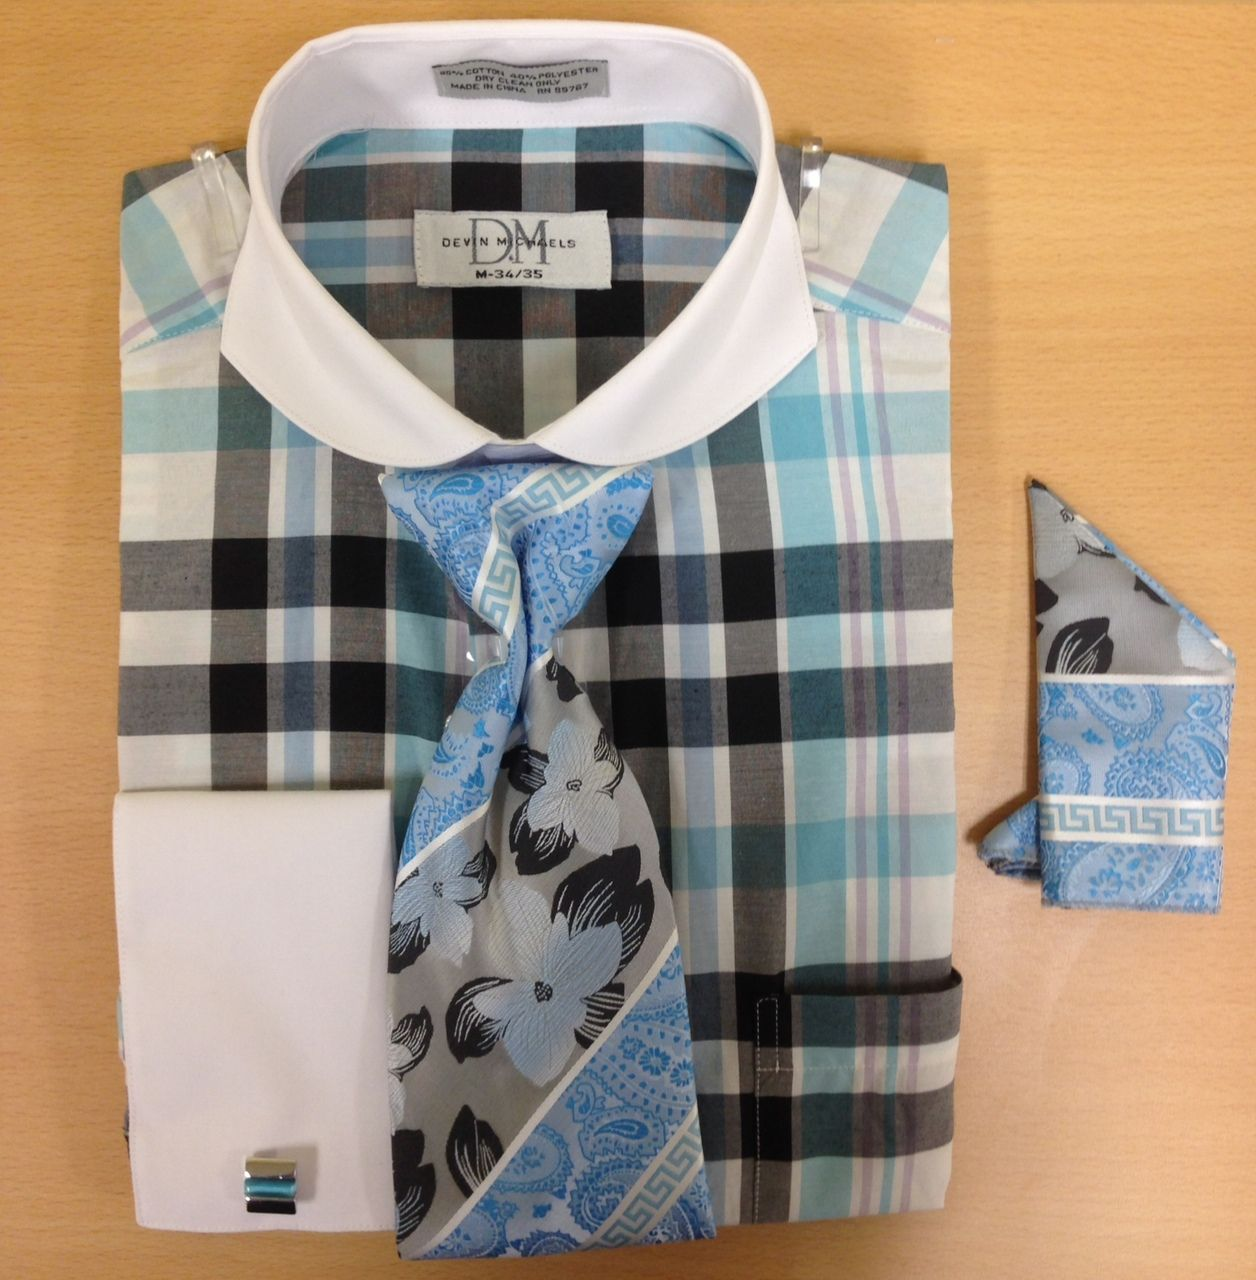 Men's Fashion Large/Small Checked Cufflink Dress Shirt Set - Turquoise/Black